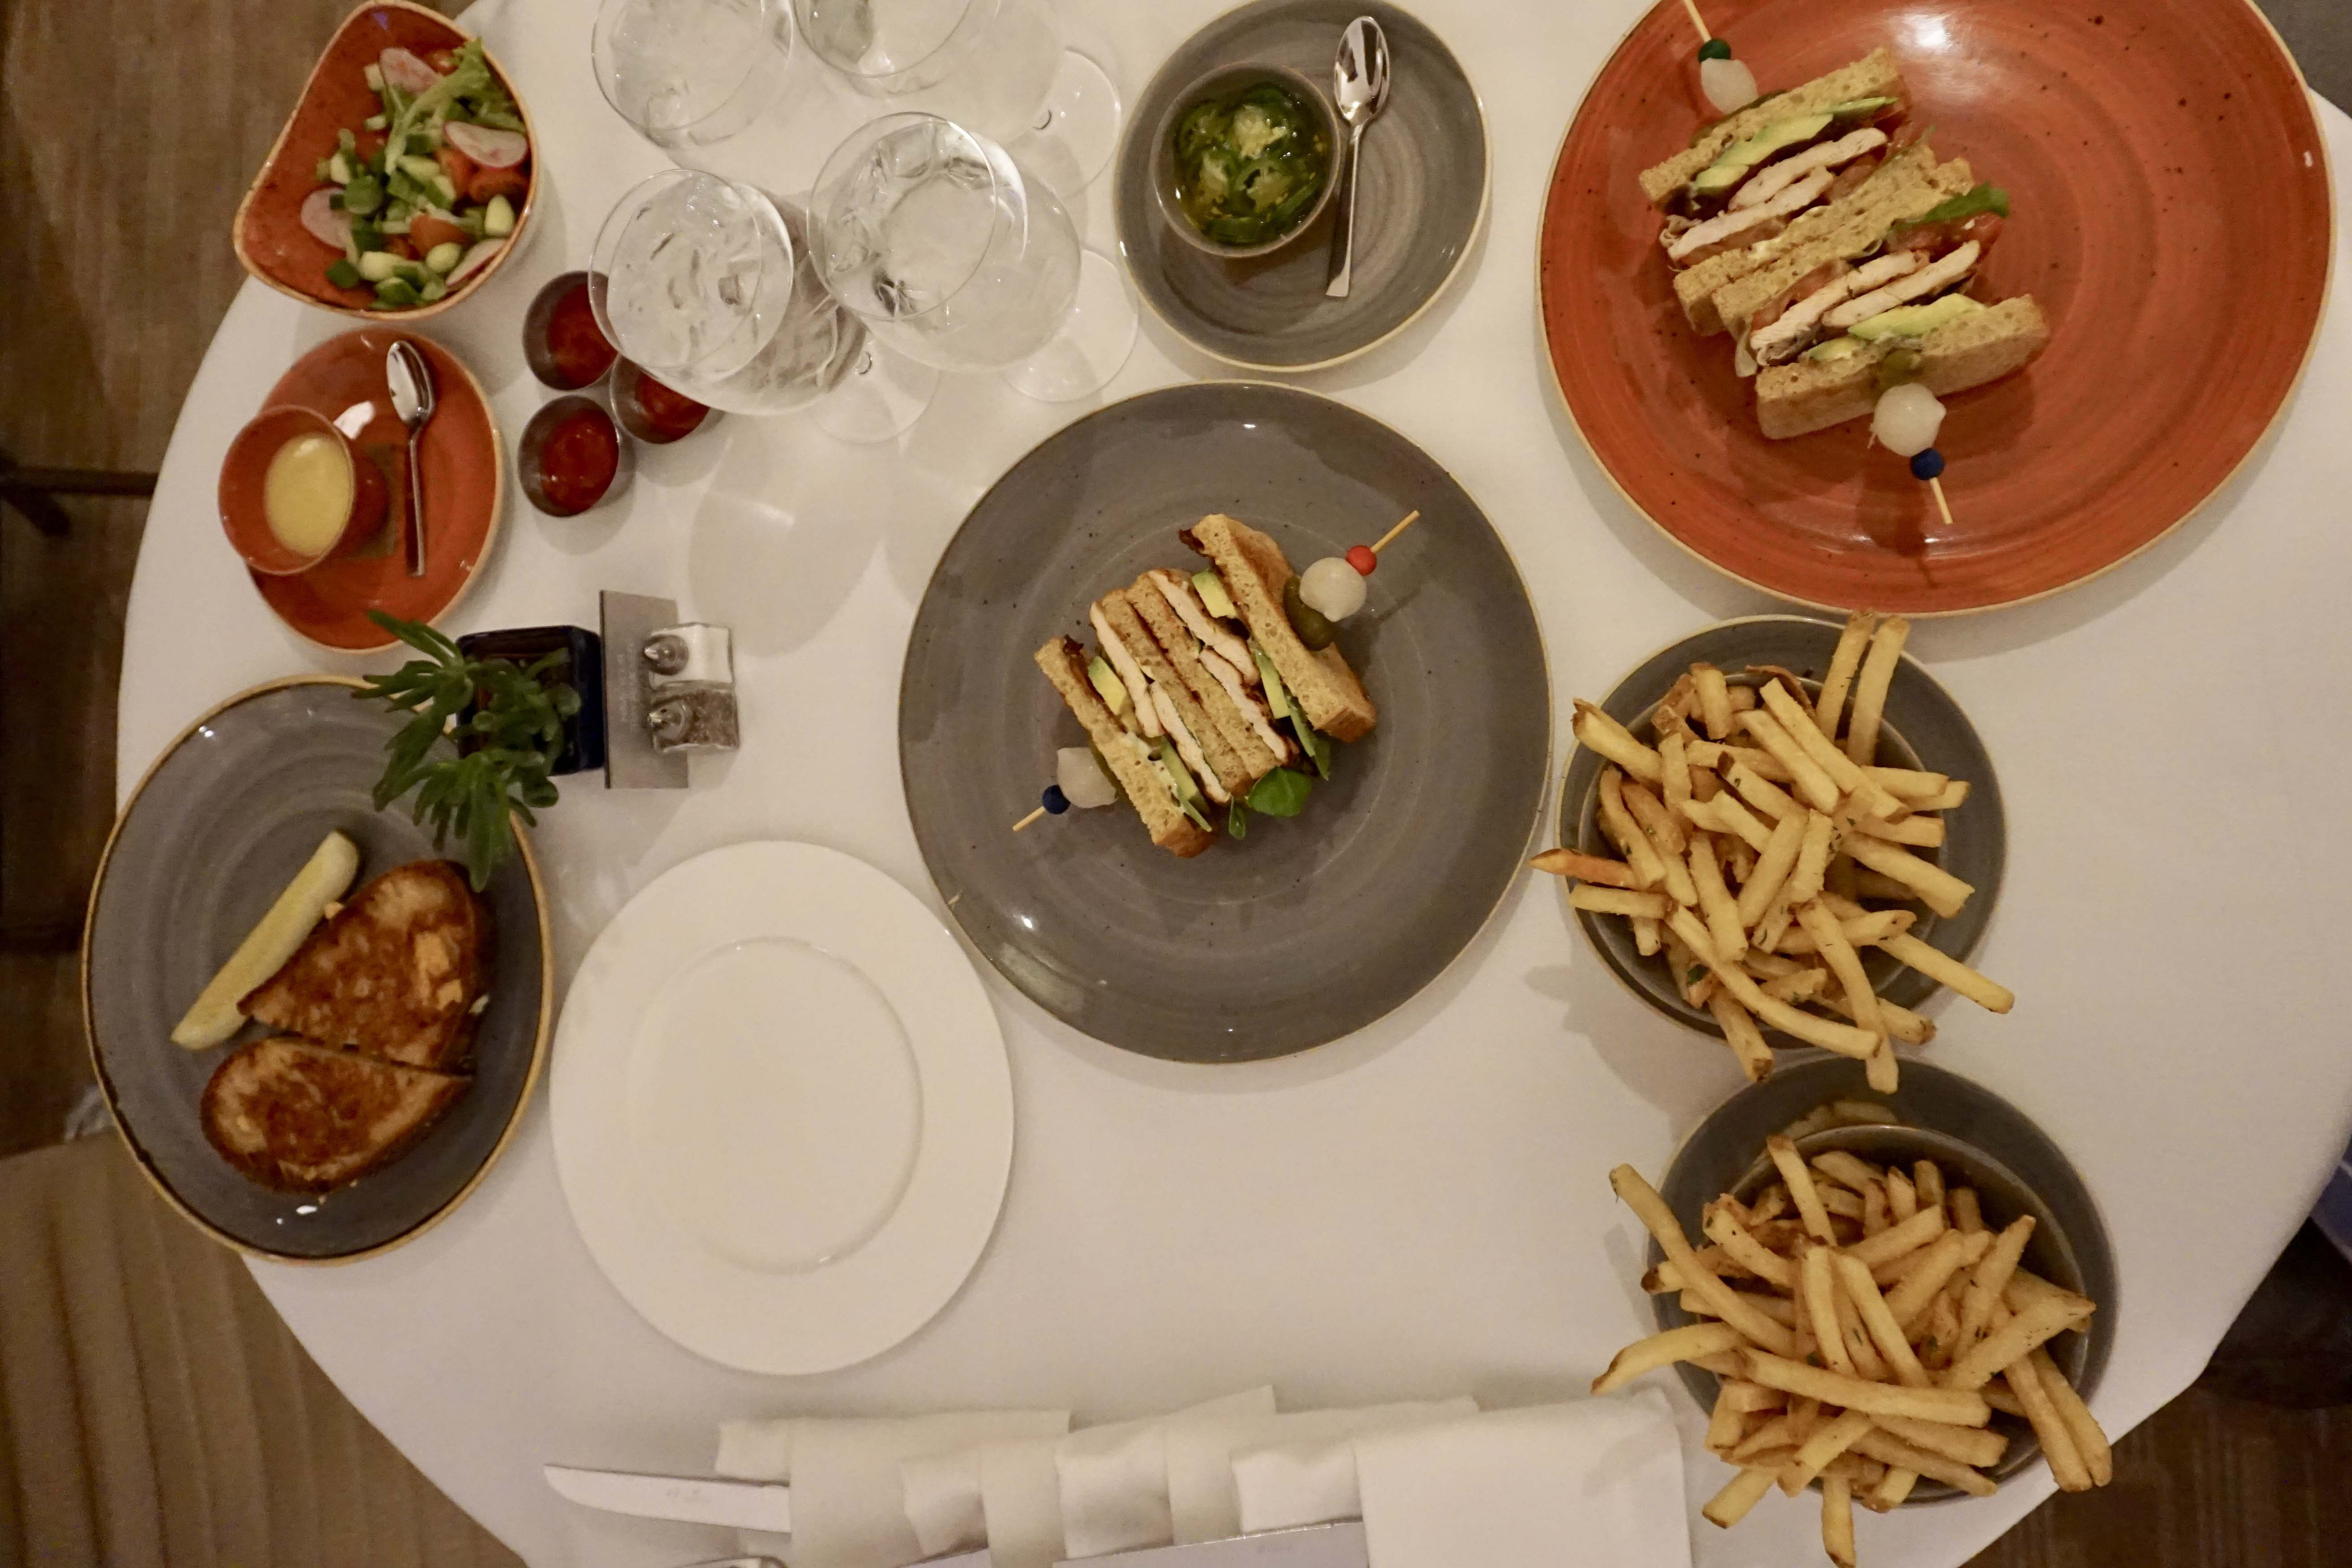 Late-night room service at Four Seasons Denver